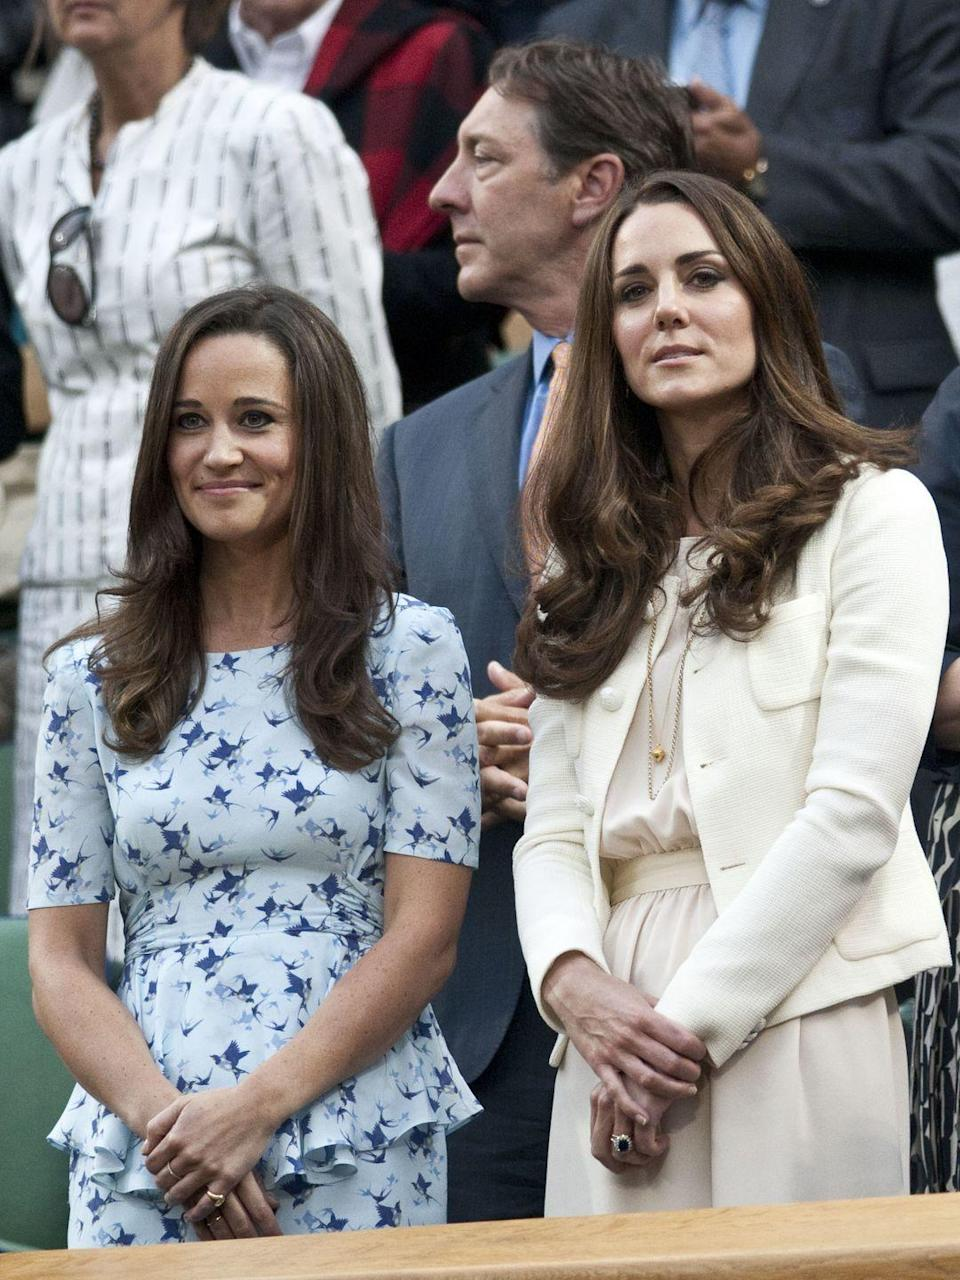 <p>Pippa Middleton was thrown into the spotlight after serving as her sister's maid of honor in the 2011 royal wedding. Although the Middleton sisters have always closely resembled one another, Pippa has picked up on some royal style cues from her big sister in recent years. </p>